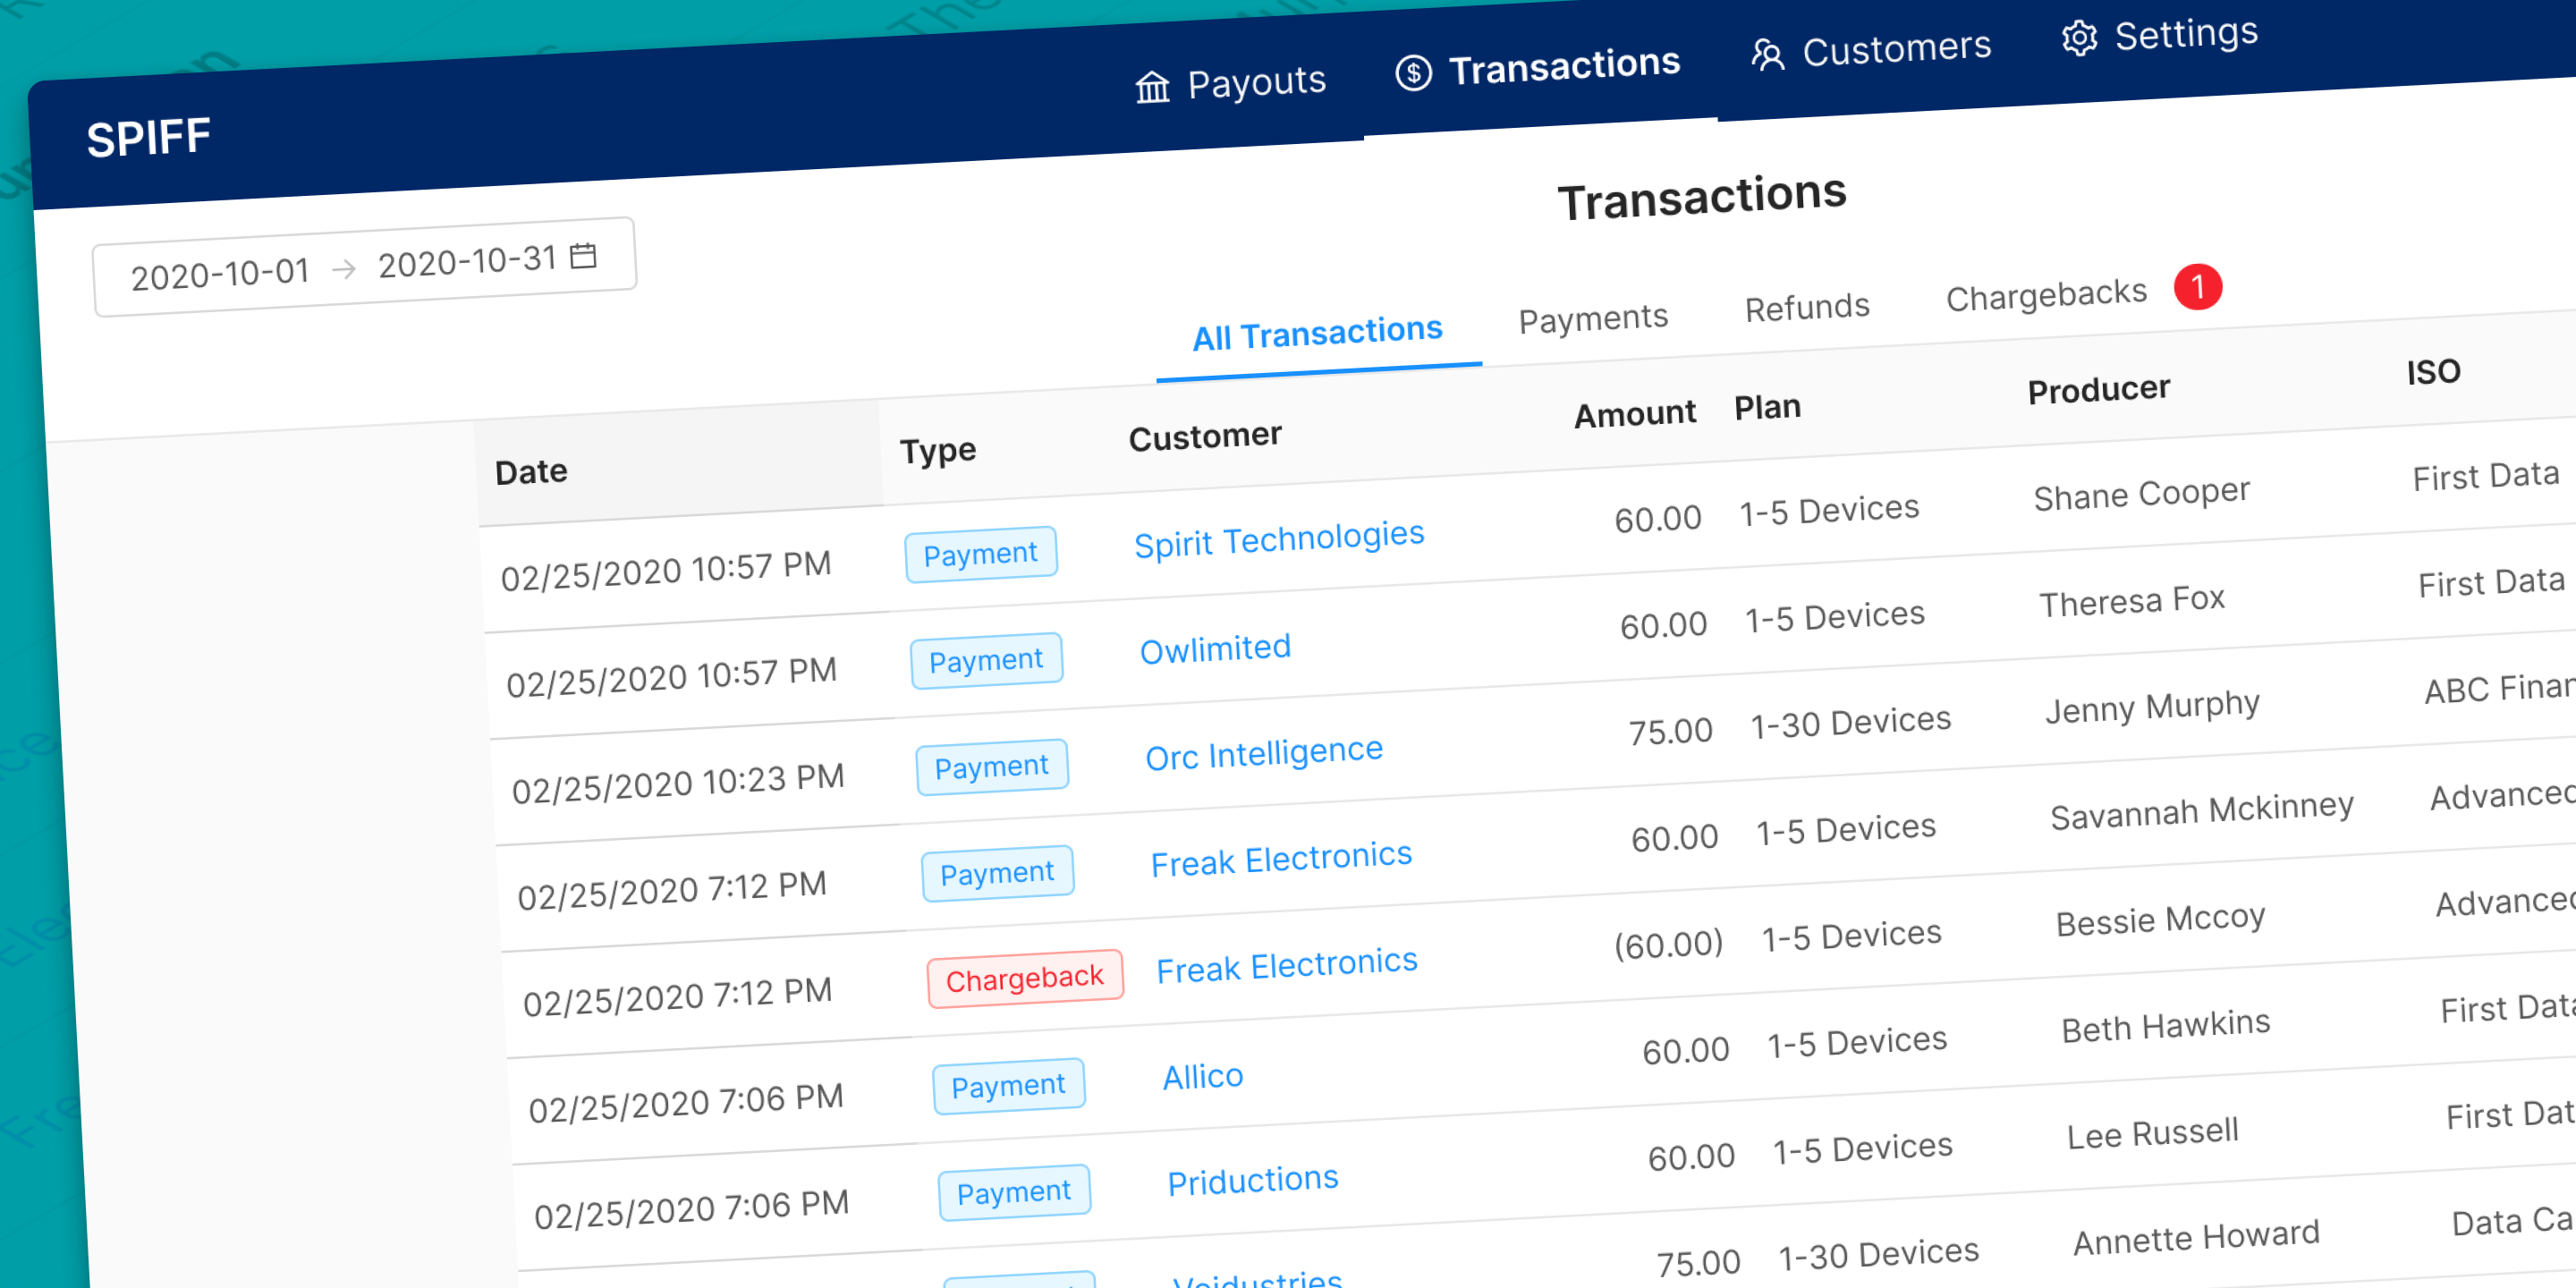 Transactions View